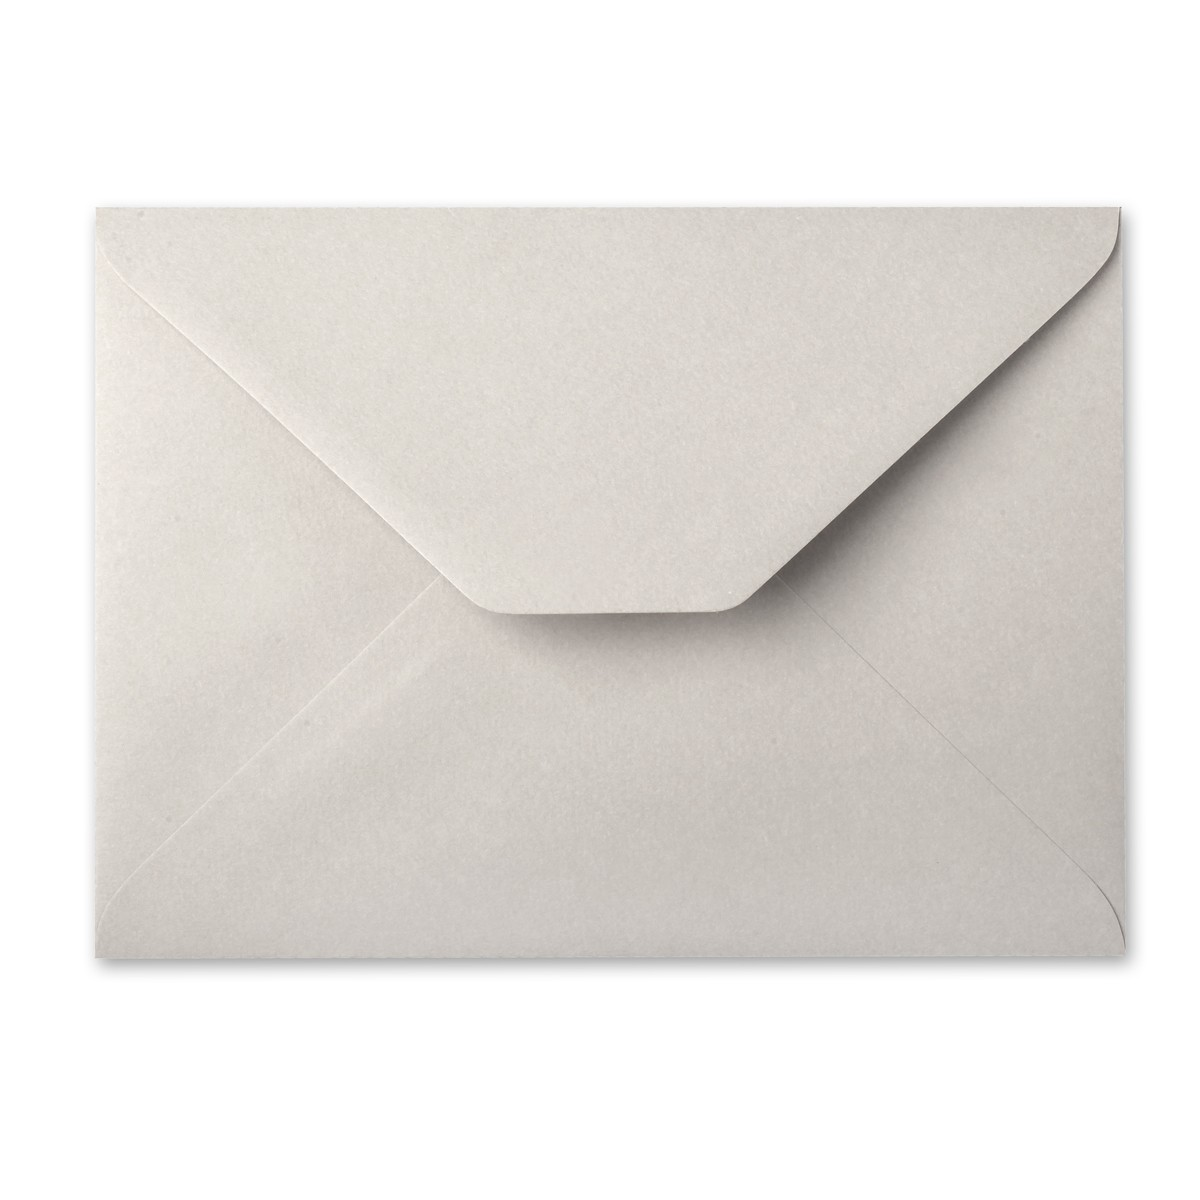 Arturo Stone Grey Grande Invitation Envelopes 700e 80 Text 6 13